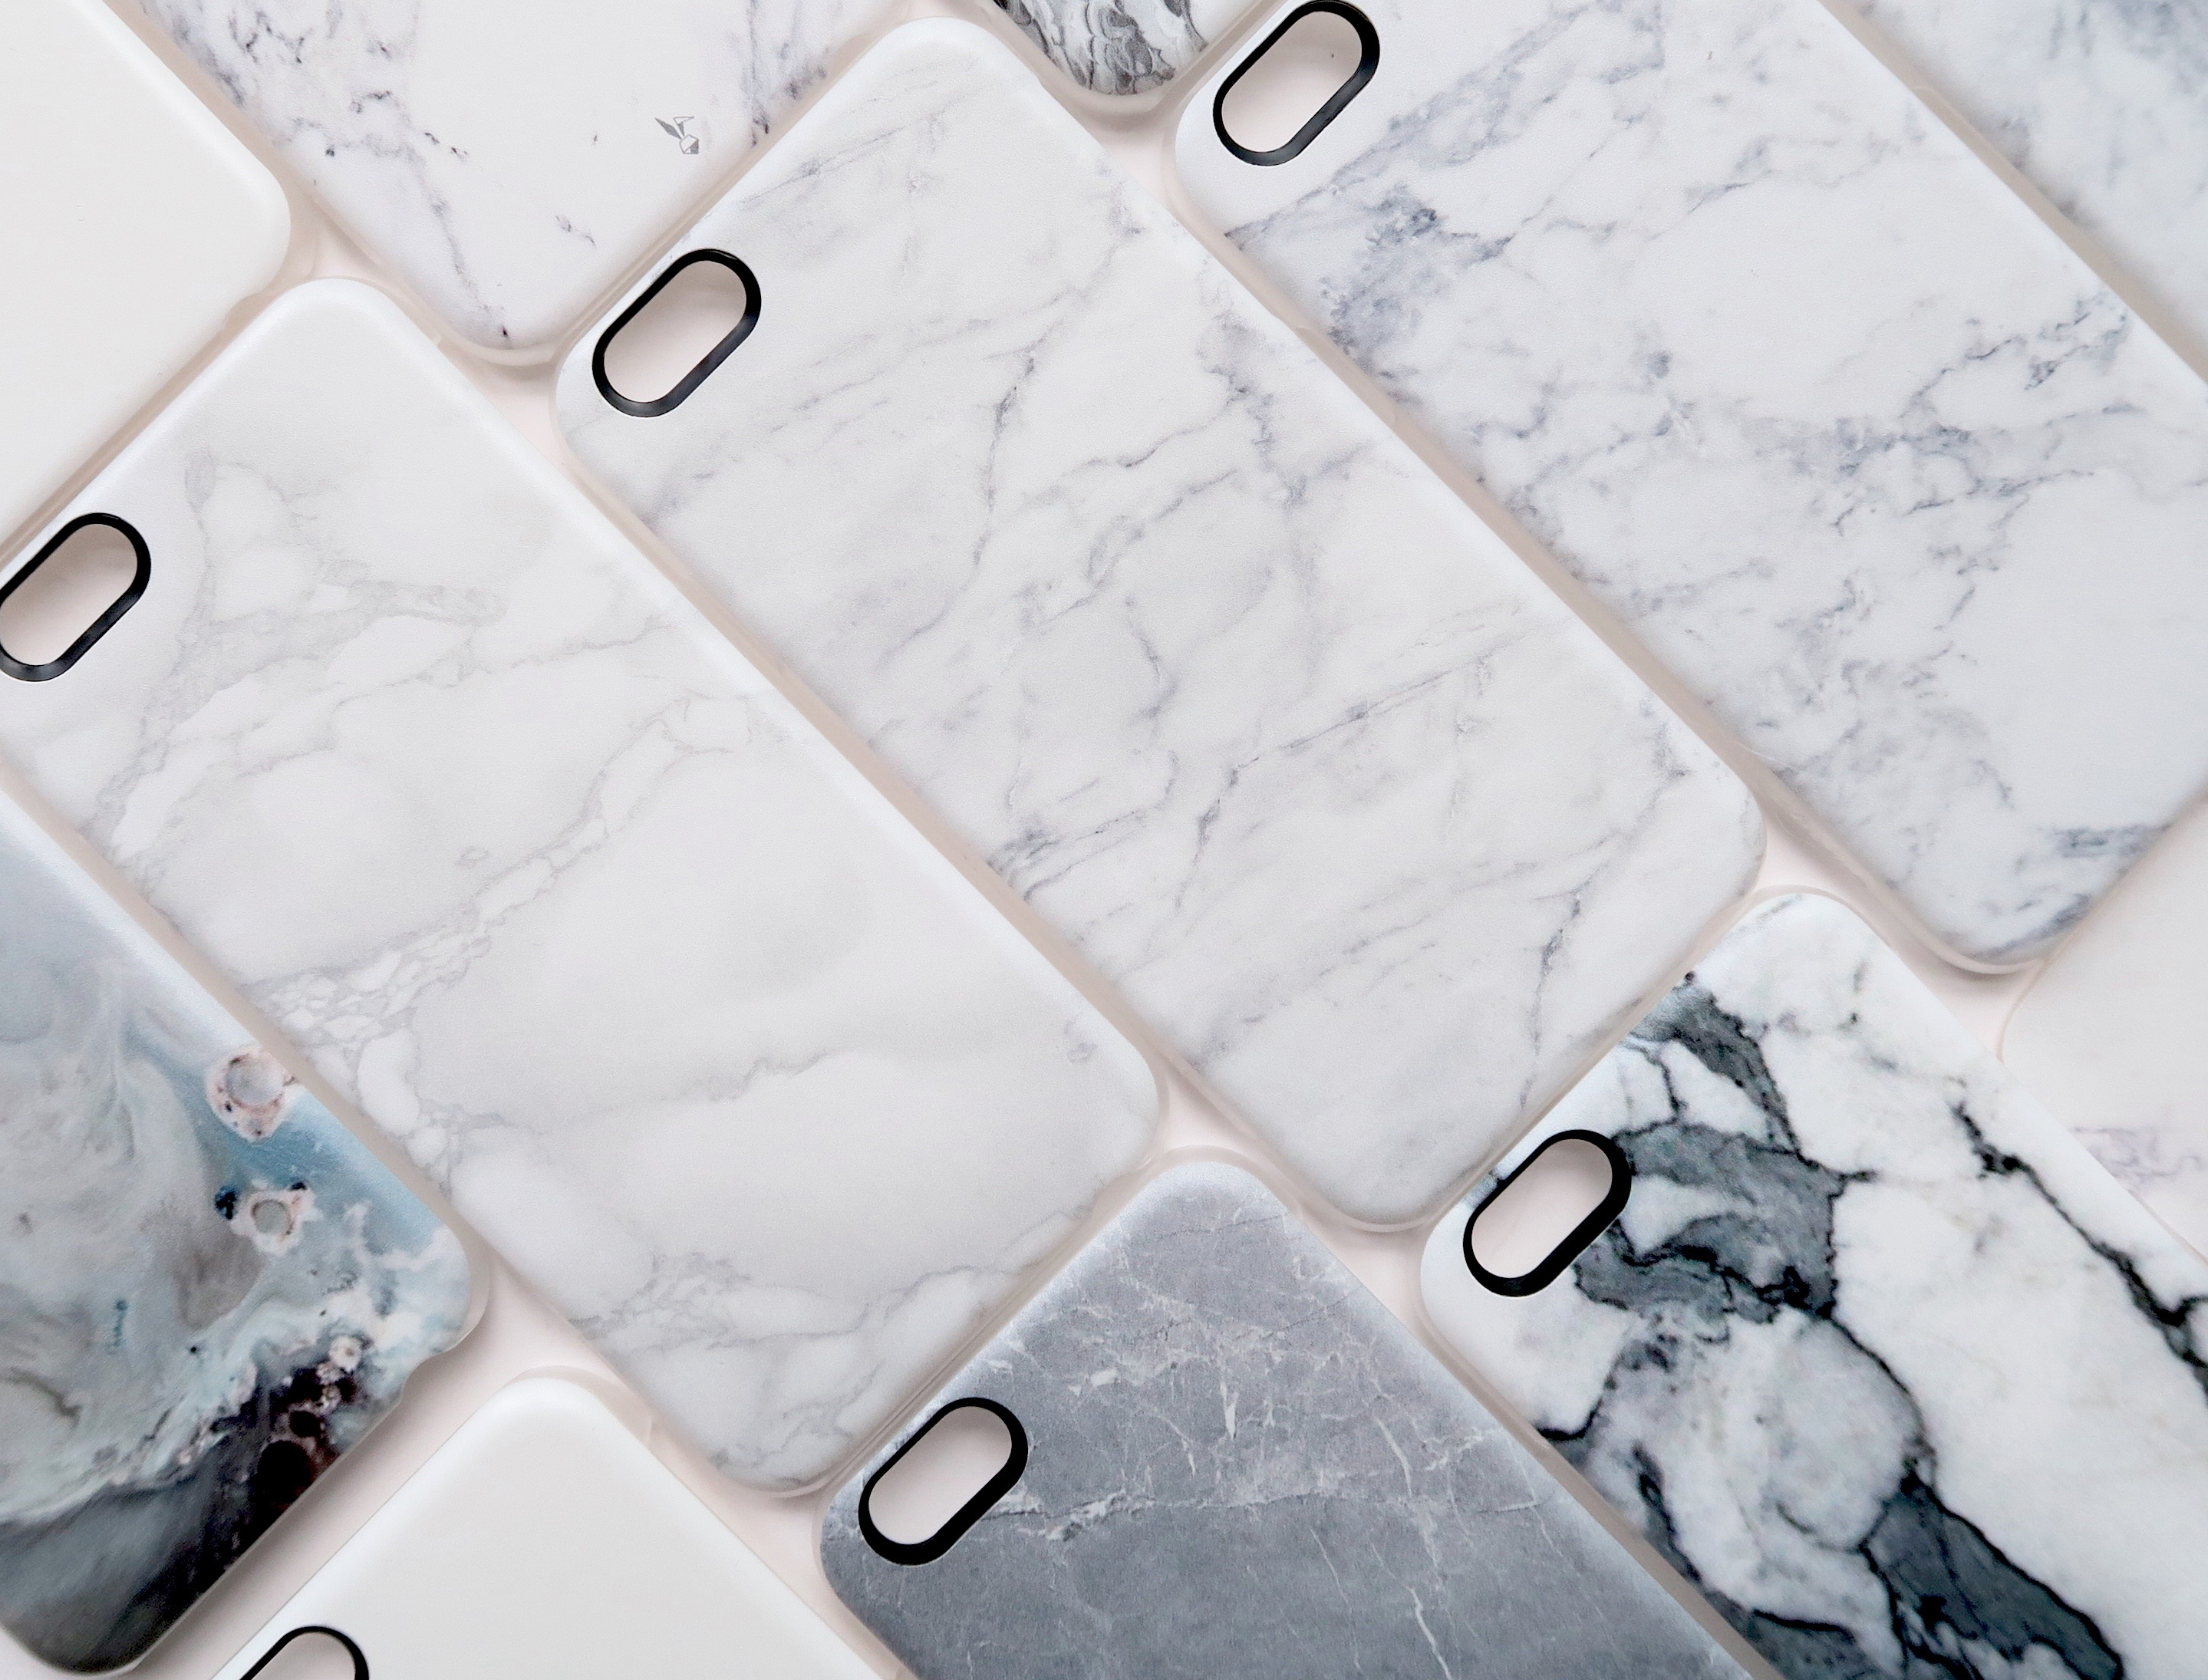 Shop Casetify's Chic iPhone Cases During a Pop-Up at Cuyana This Friday